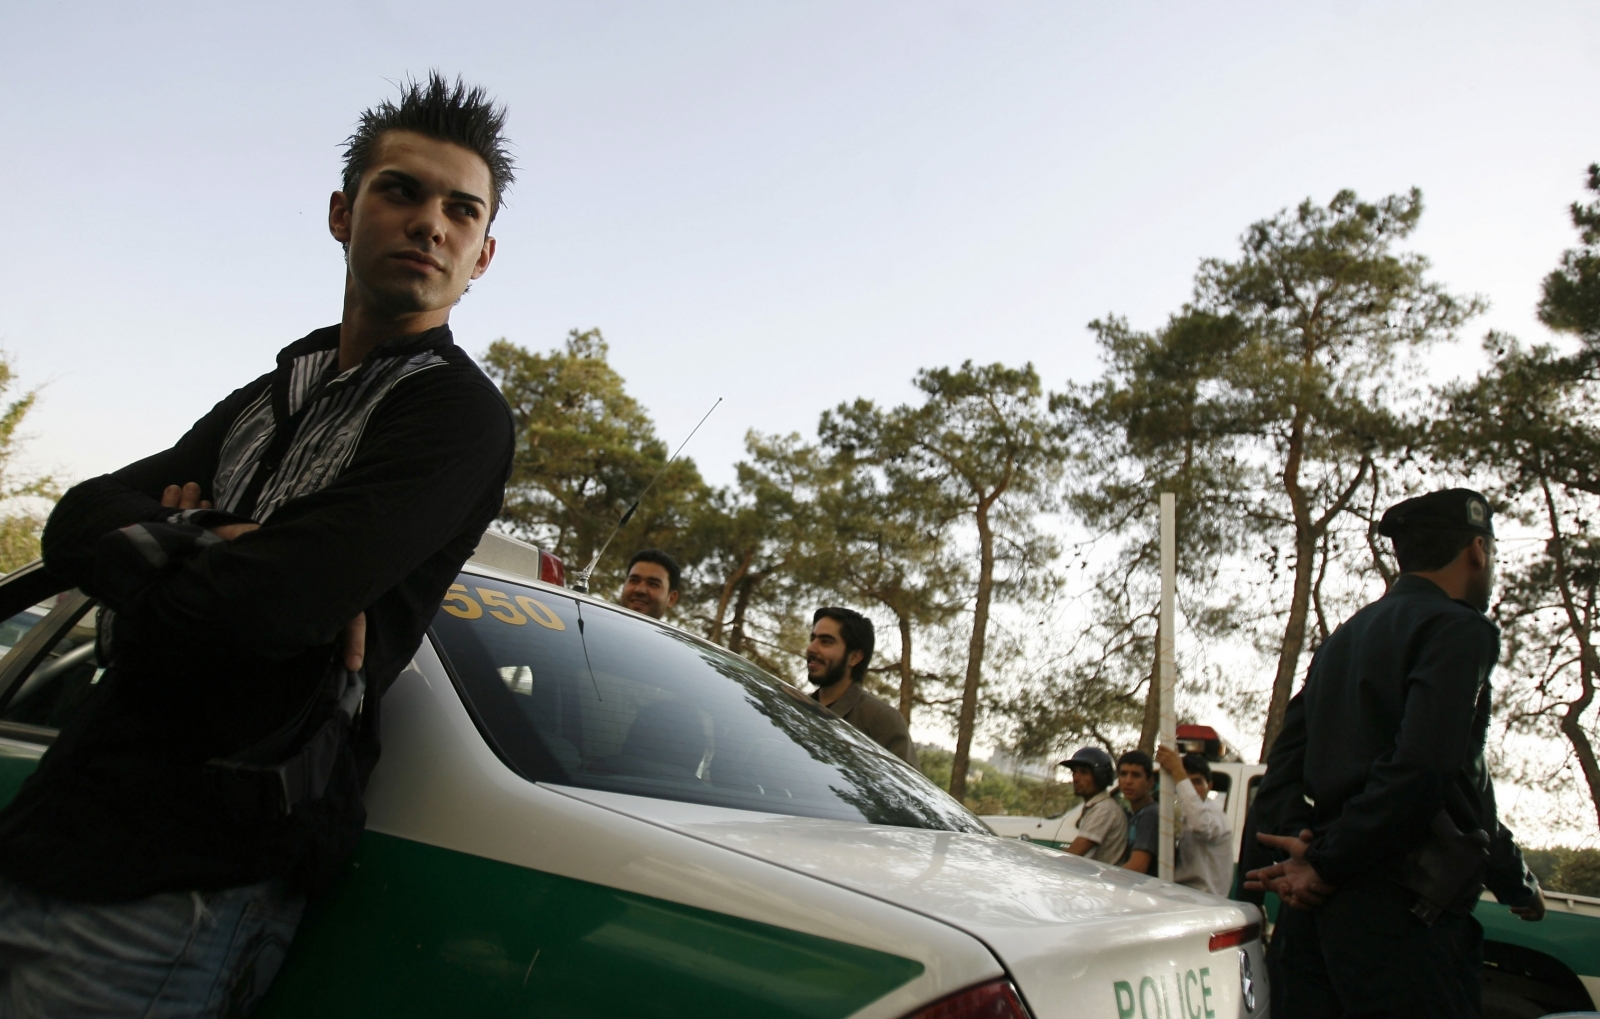 A youth leans against a police car after being detained for a Western-style haircut in Tehran